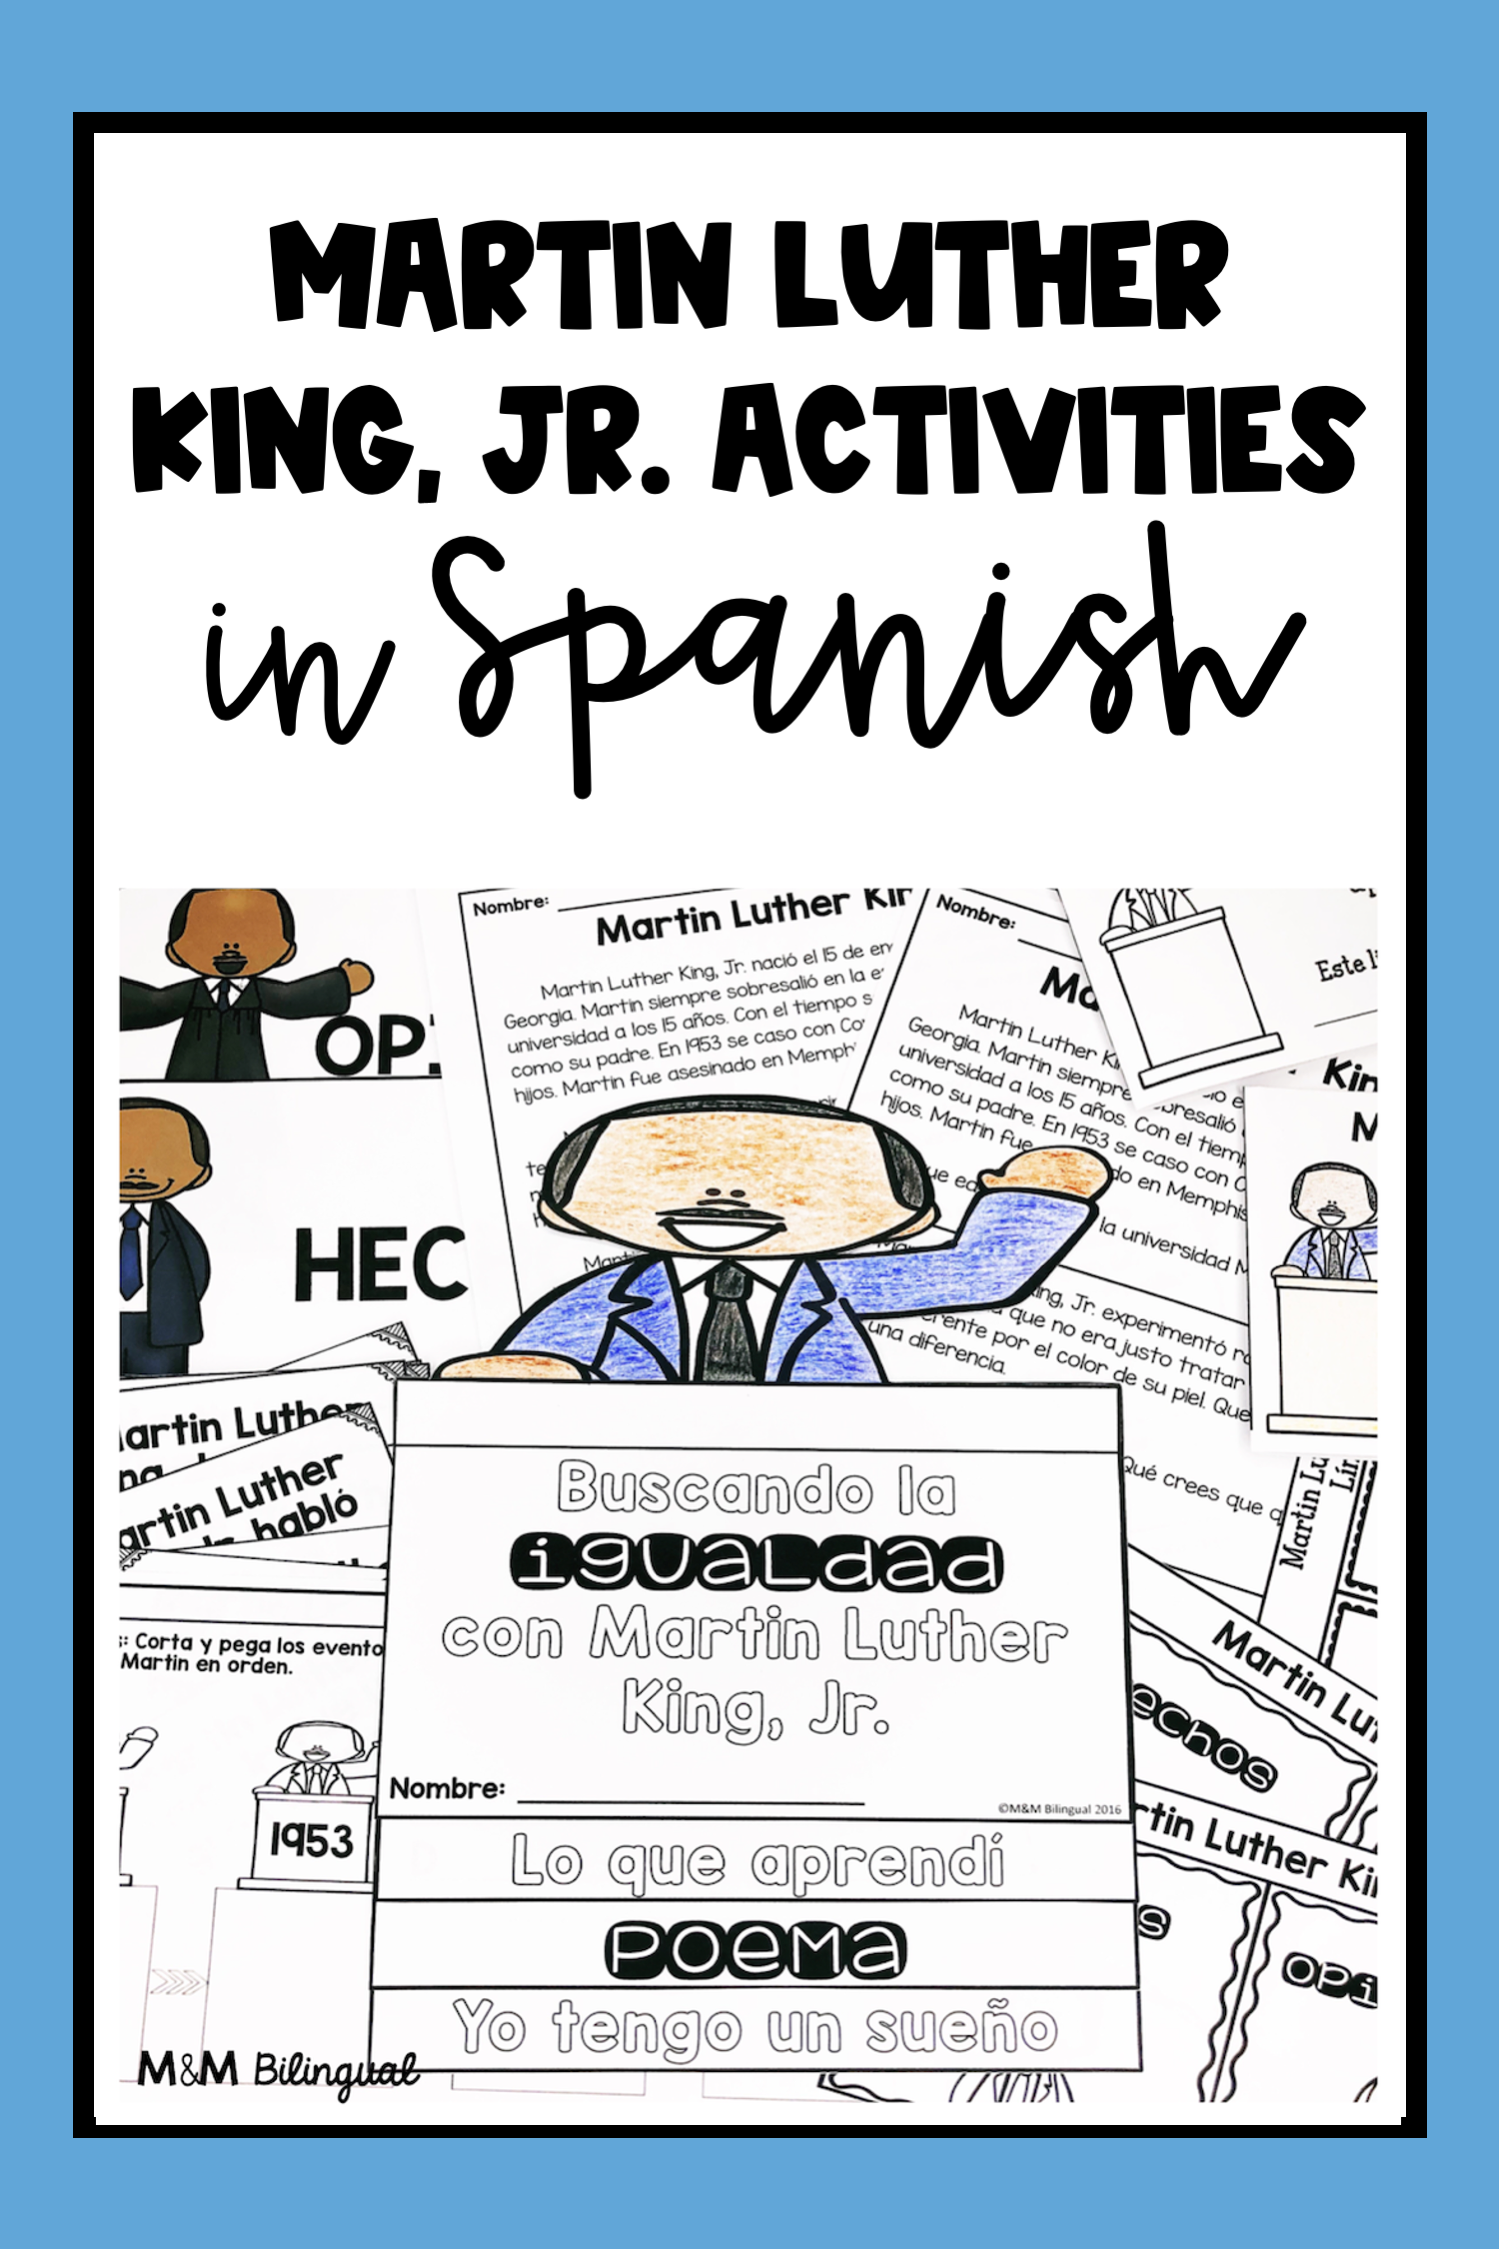 Photo of Martin Luther King, Jr. Activities in SPANISH